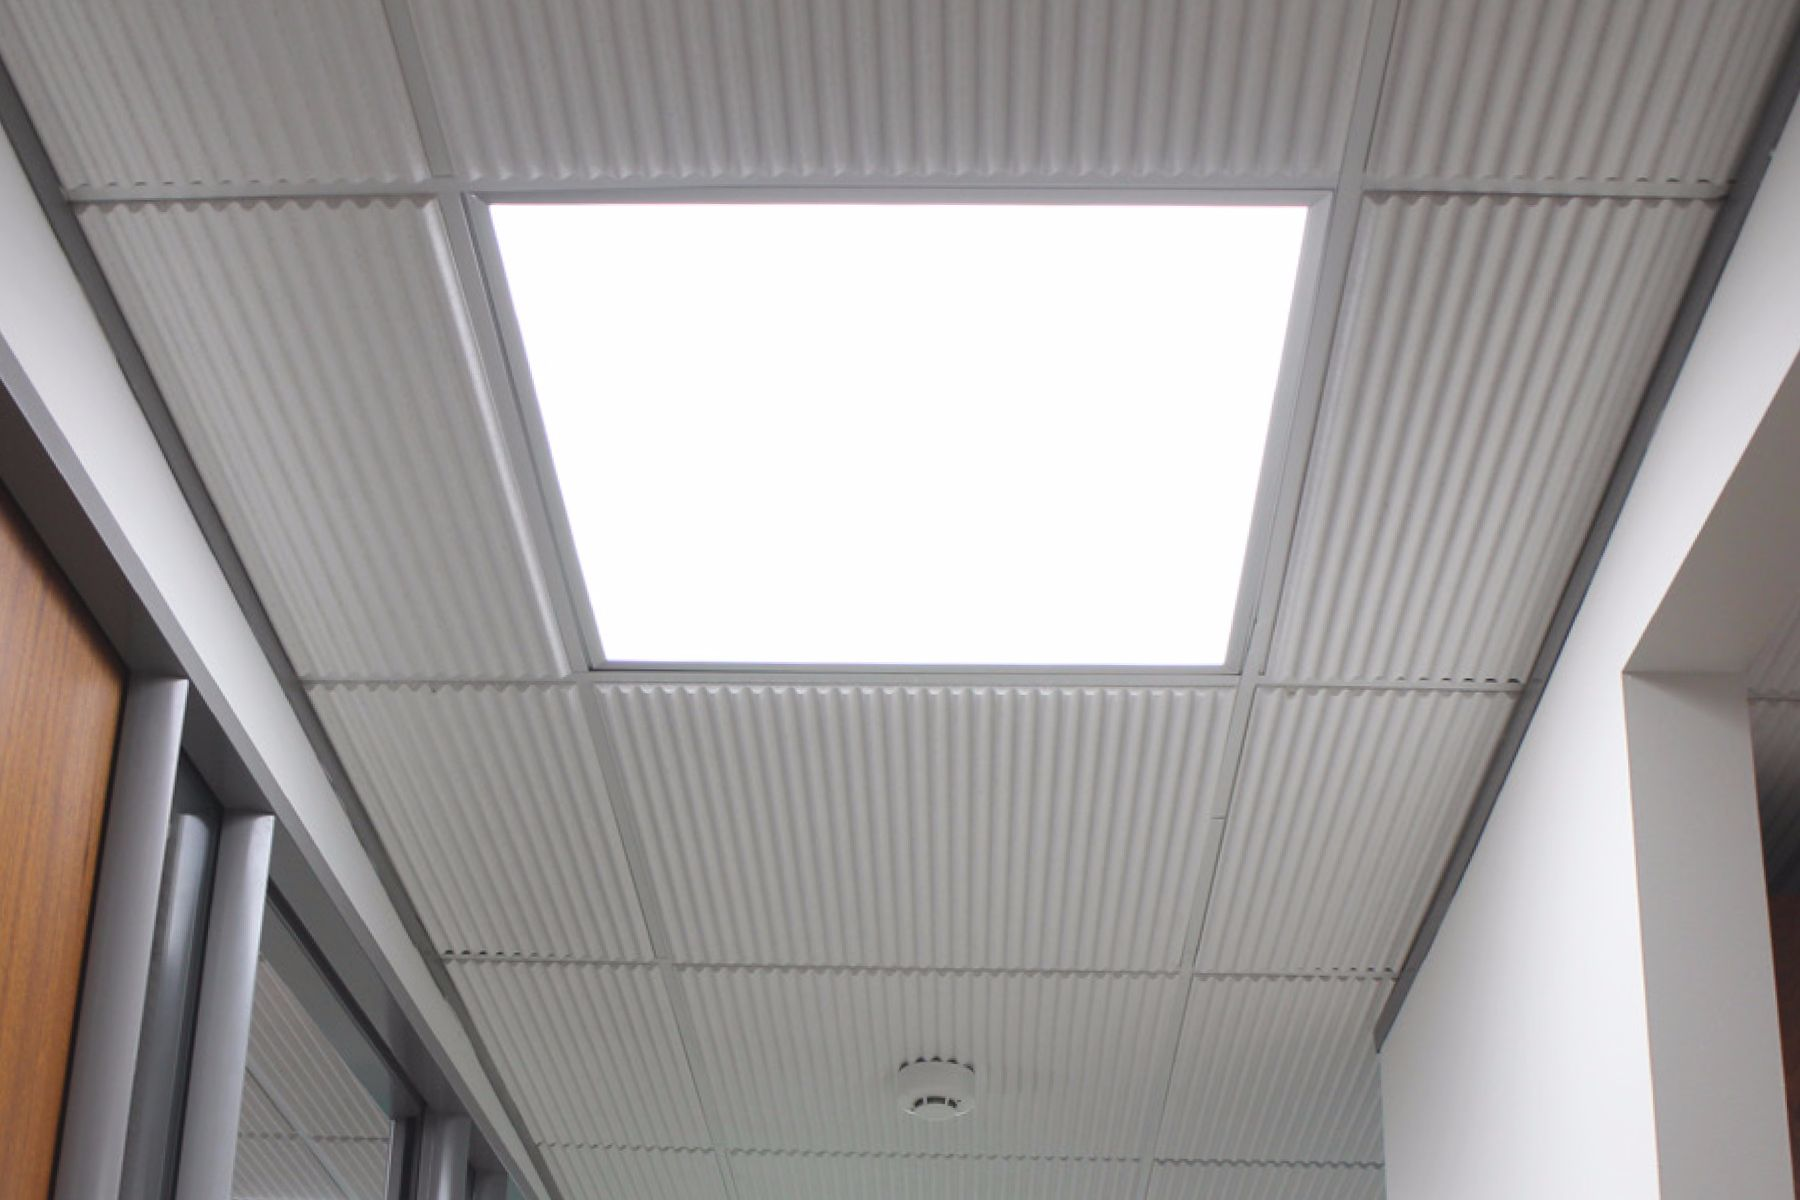 LED Start Panel in ceiling